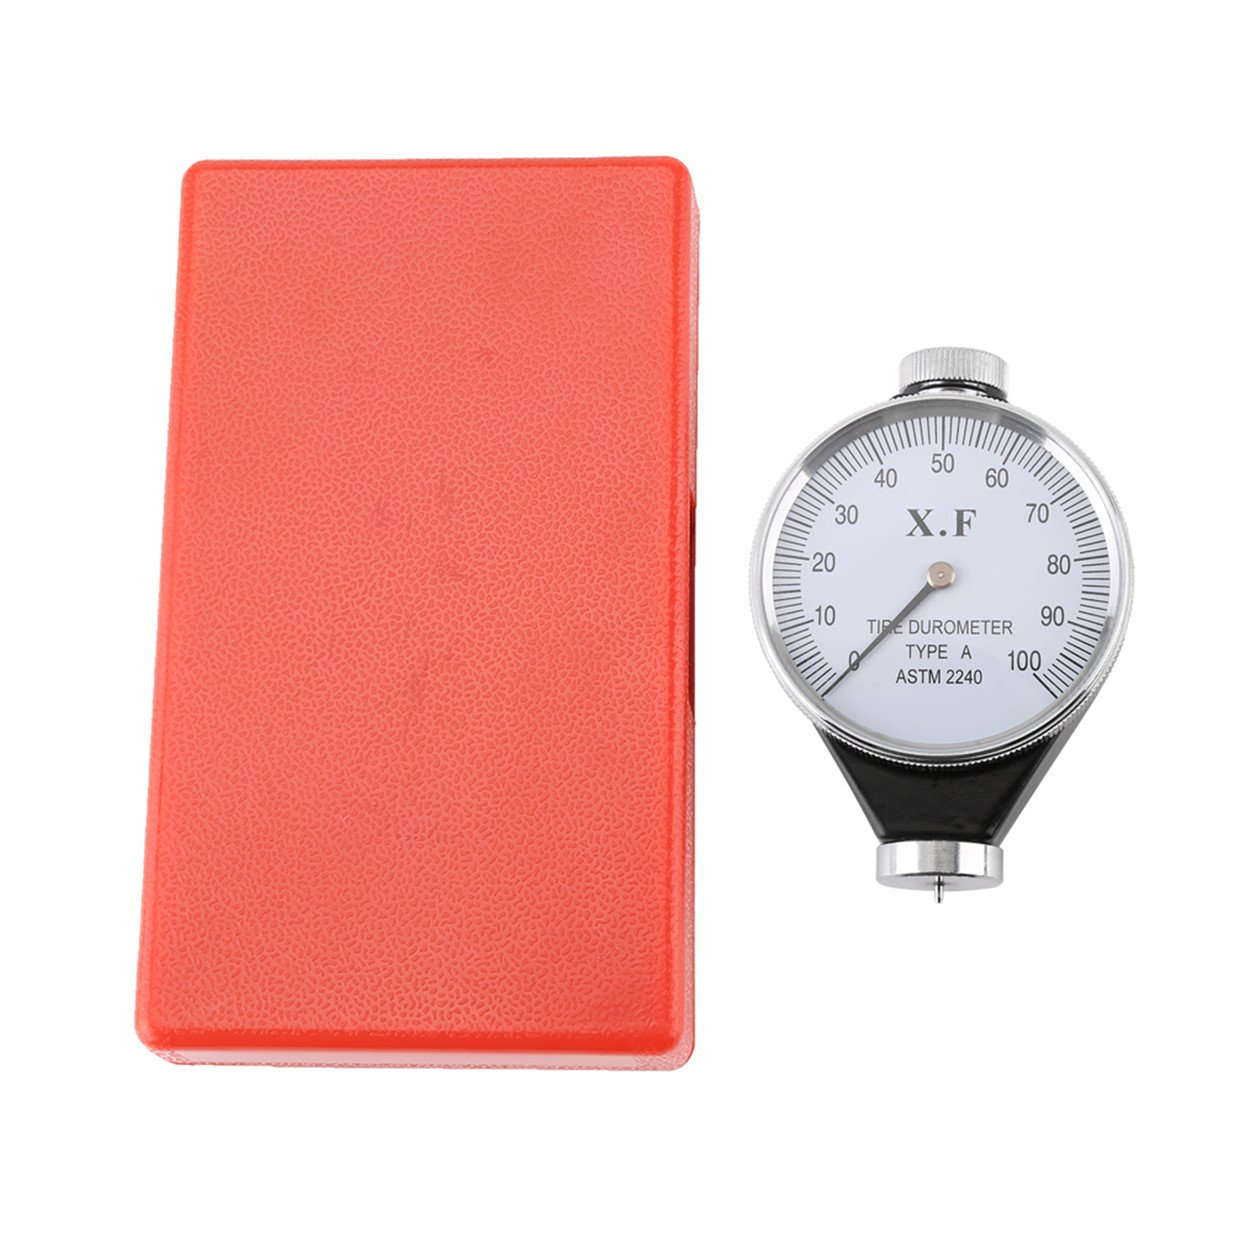 Hardness Tester Meter,Shore Type A/O/D Rubber Tire Durometer Hardness Tester Meter 0-100 HA(Type A)